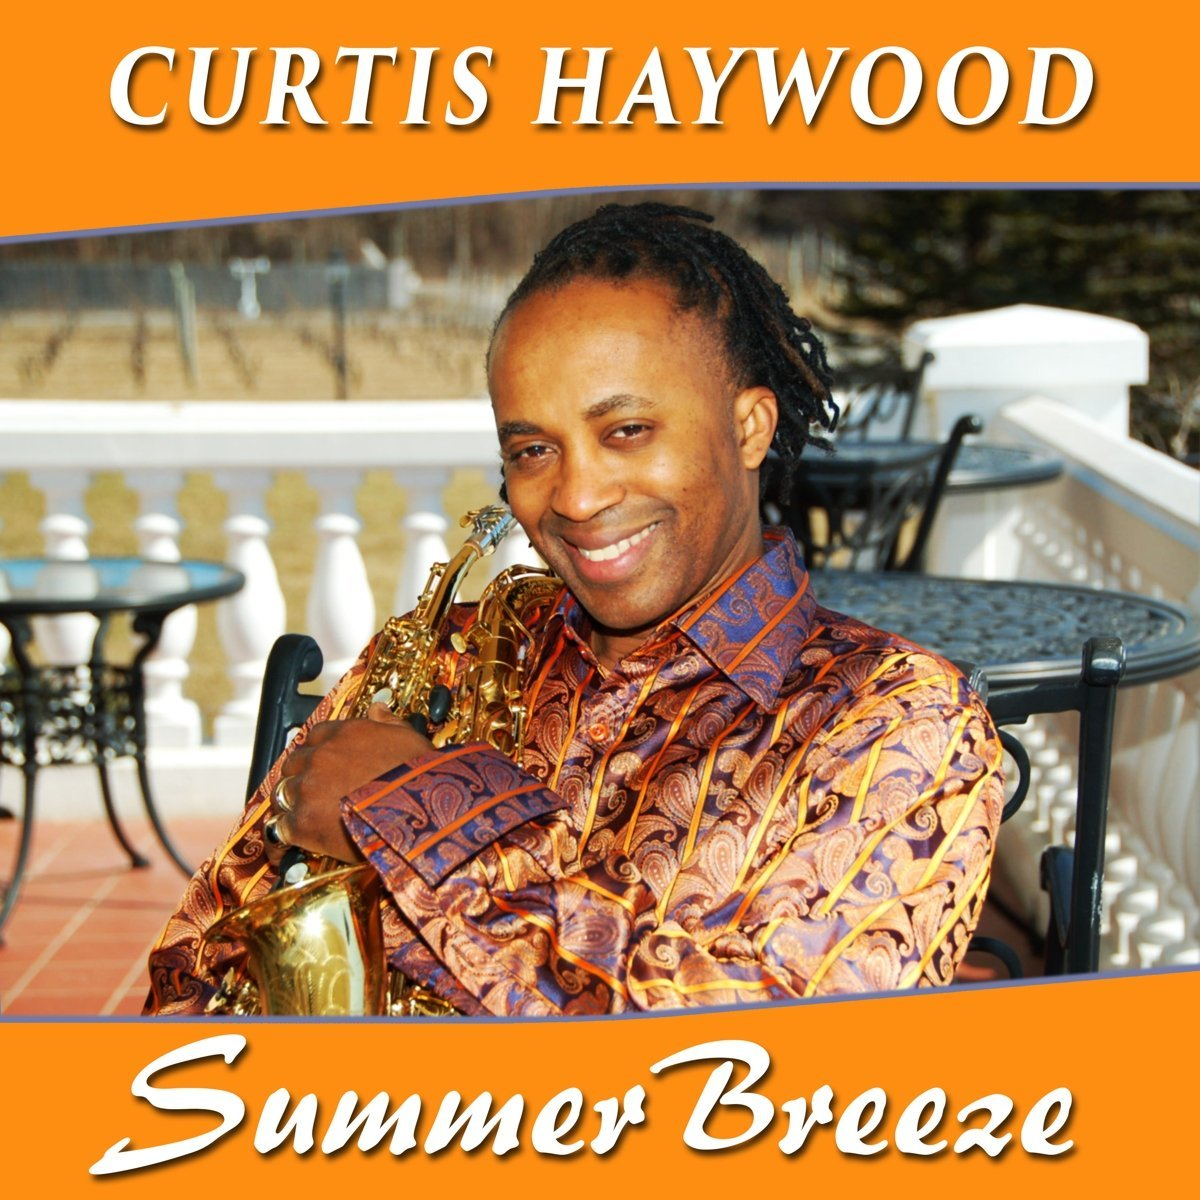 CURTIS HAYWOOD - Summer Breeze cover